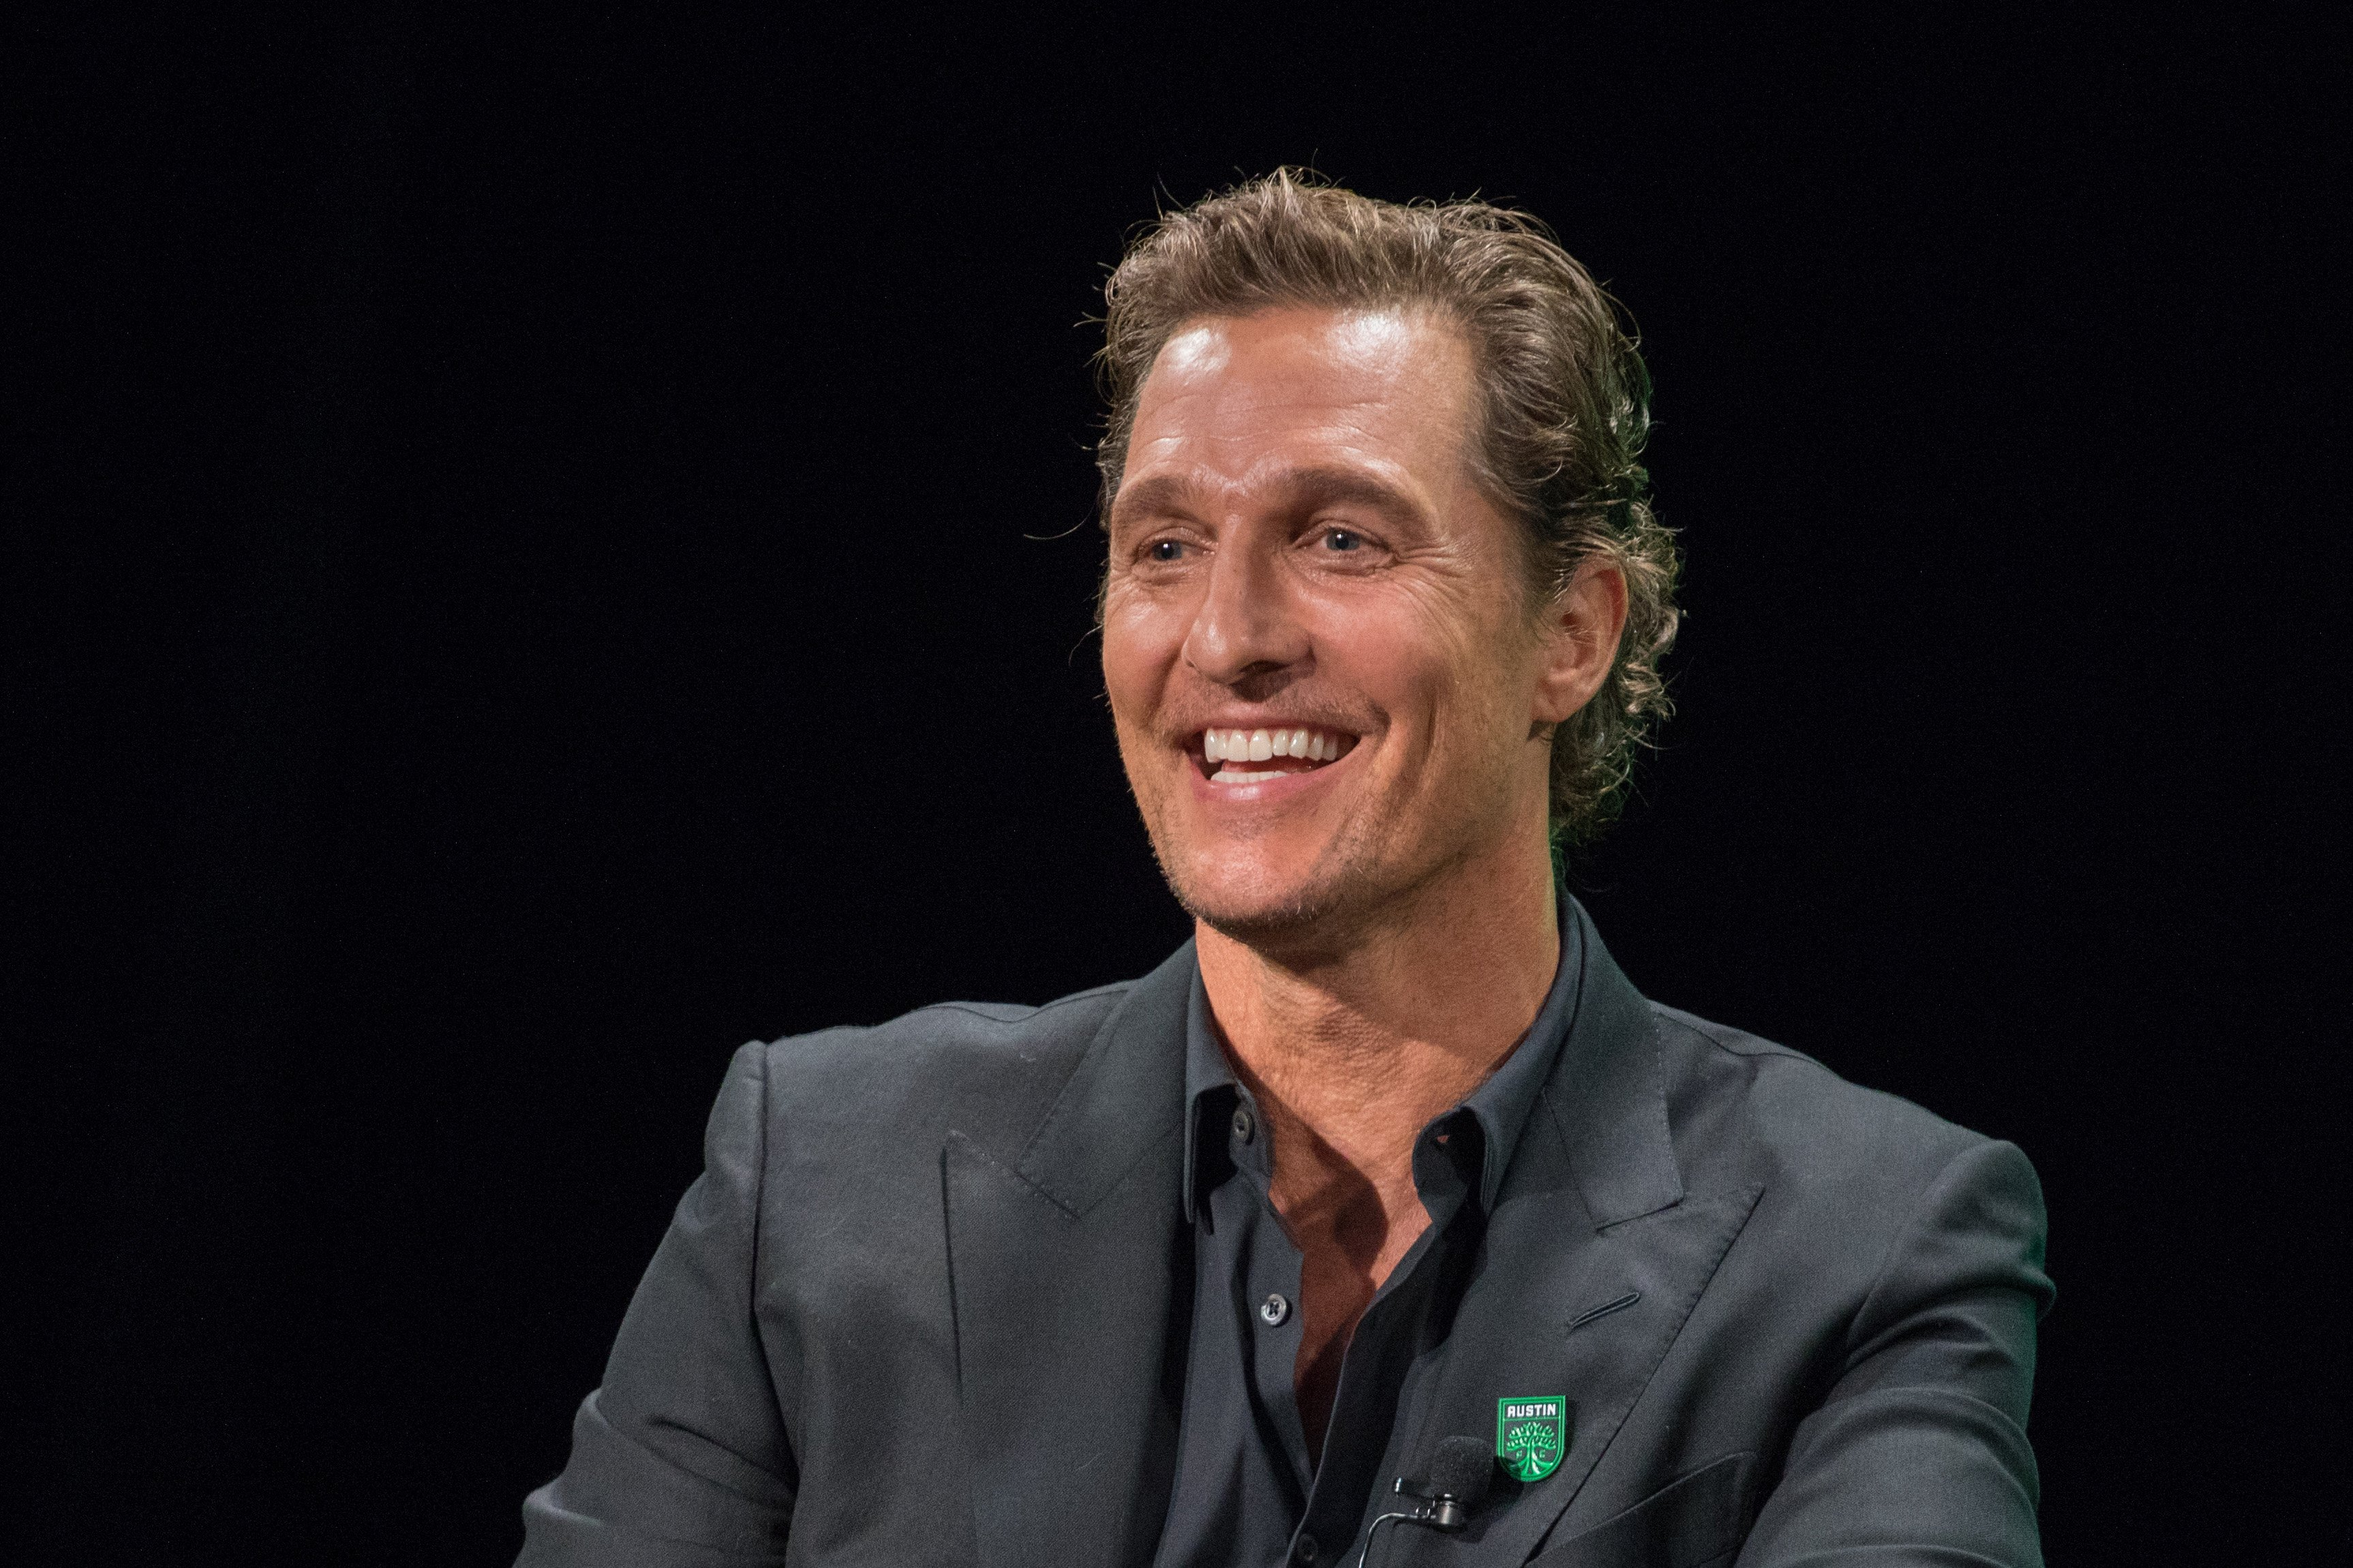 Matthew McConaughey, Academy Award-winning actor attends the Austin FC Major League Soccer club announcement of four new investors including himself as the 'Minister of Culture' at 3TEN ACL Live on August 23, 2019 in Austin, Texas.  Source: Getty Images